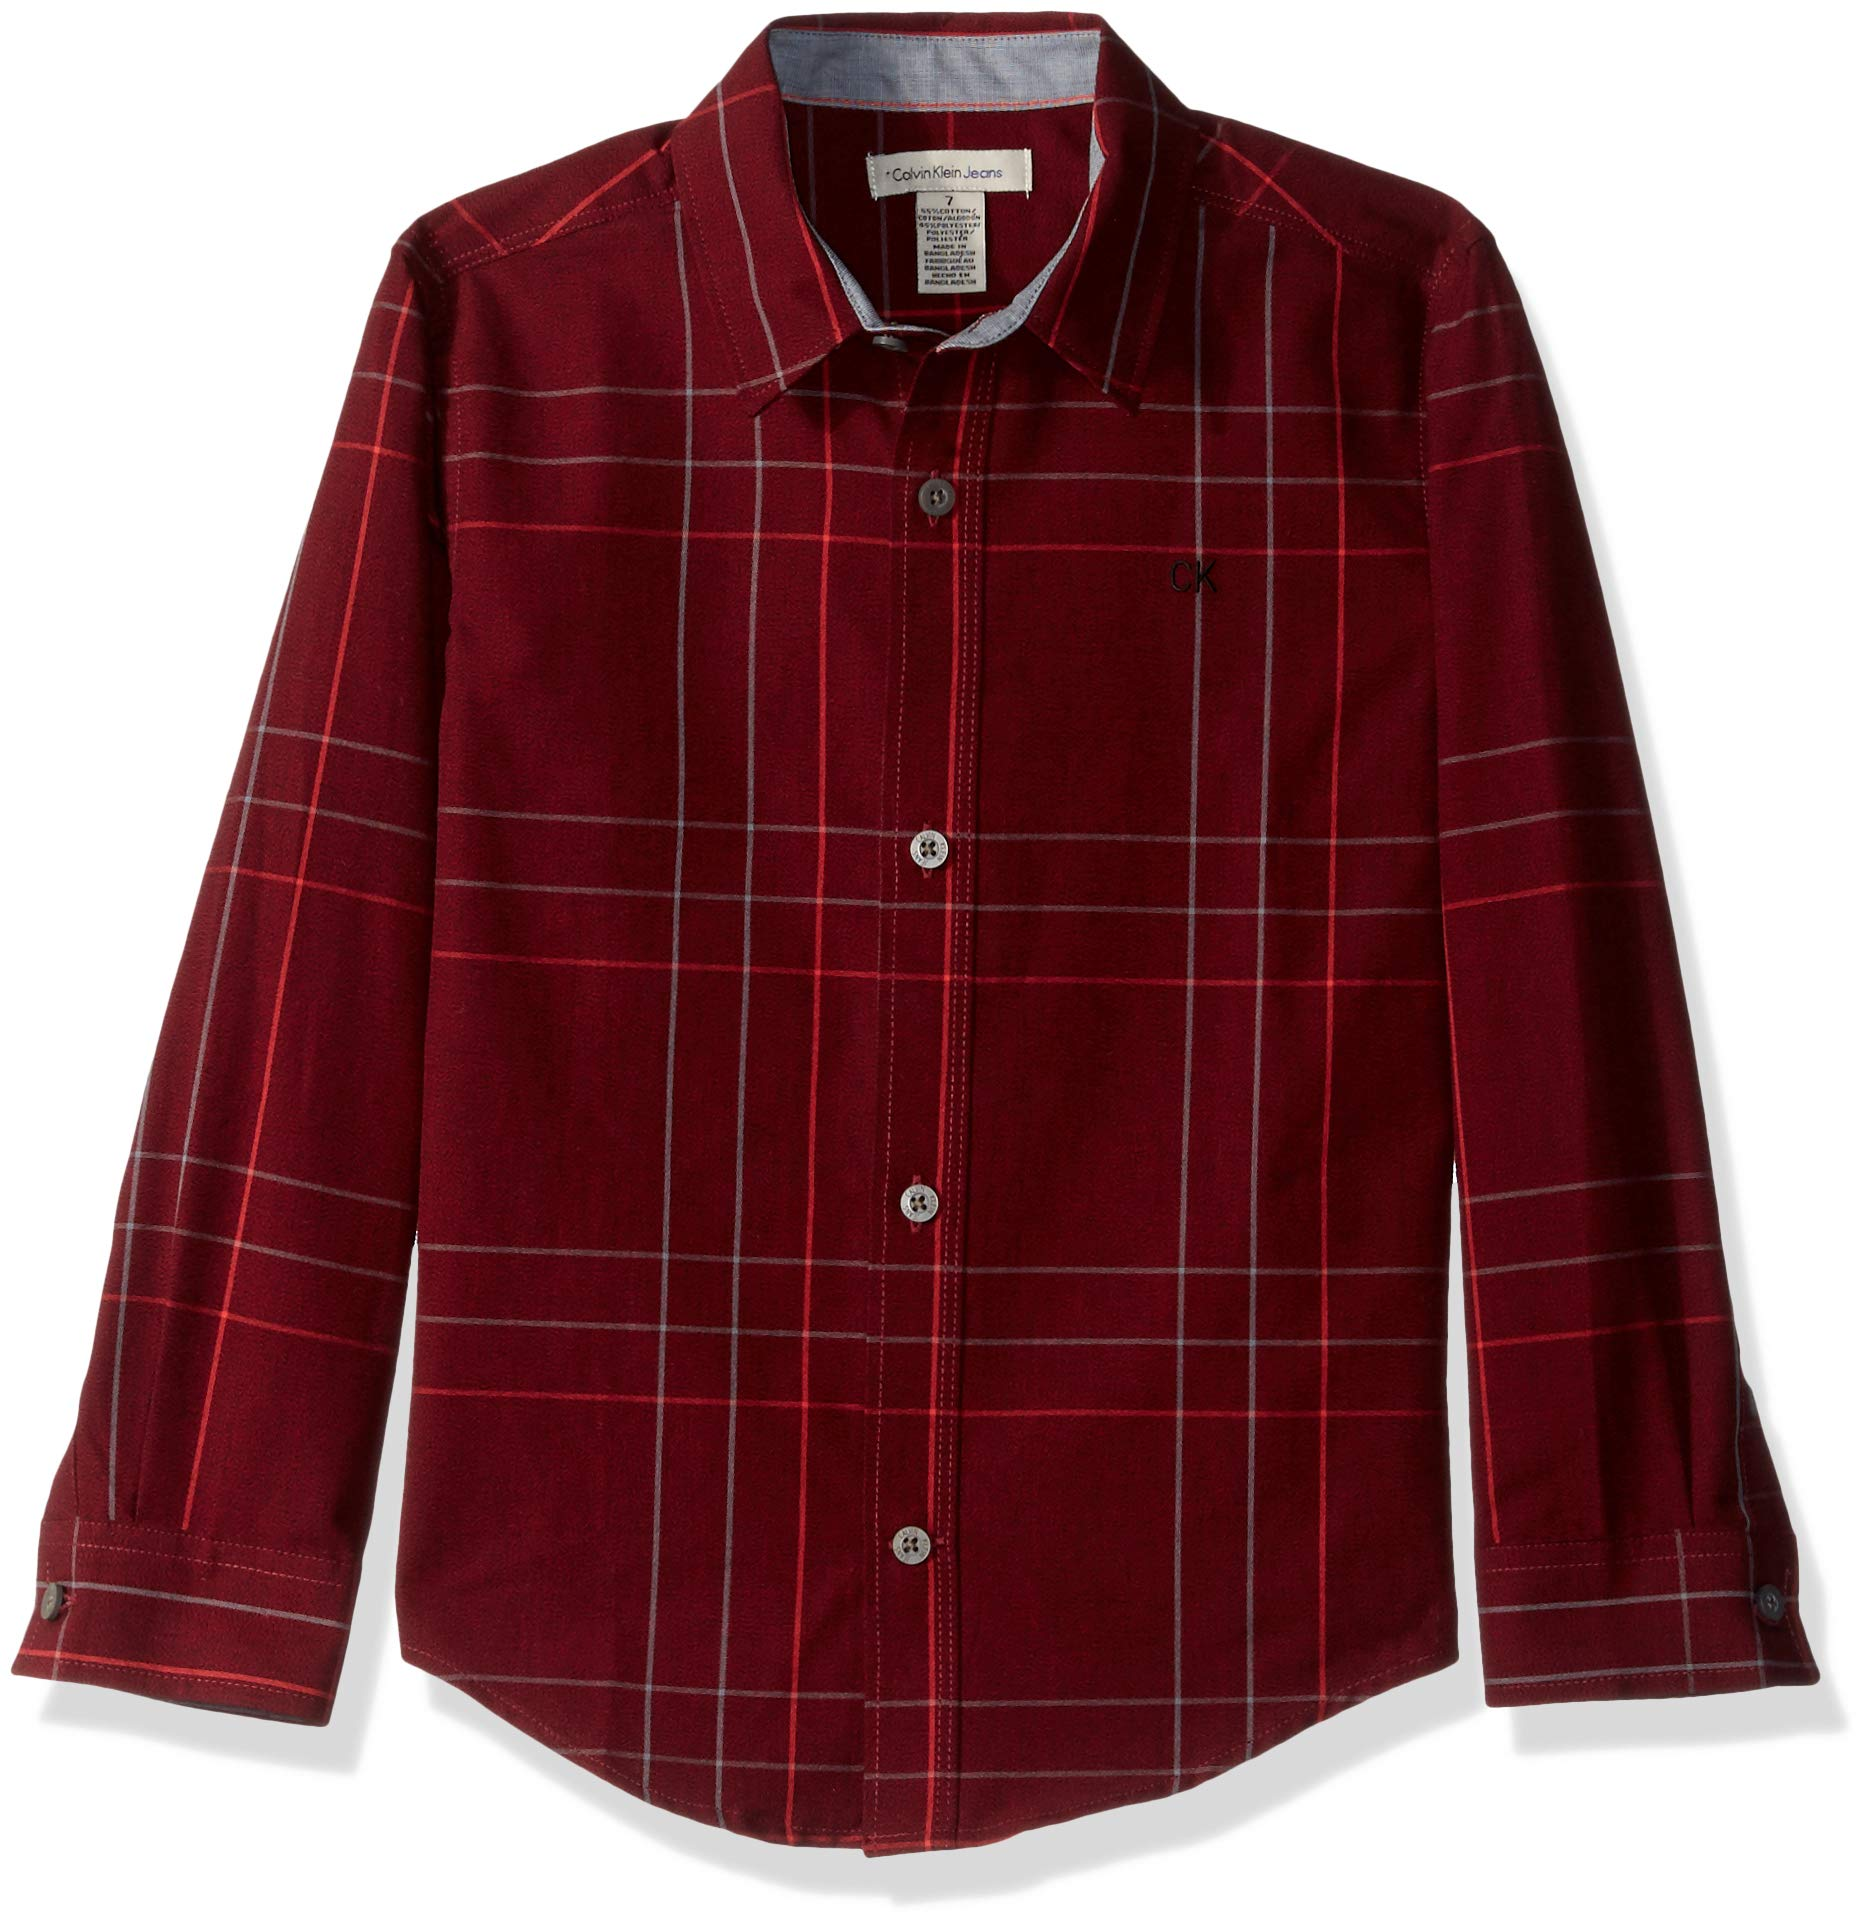 Calvin Klein Boys' Little Plaid Long Sleeve Shirt with Pocket, Twist Dark red, 6